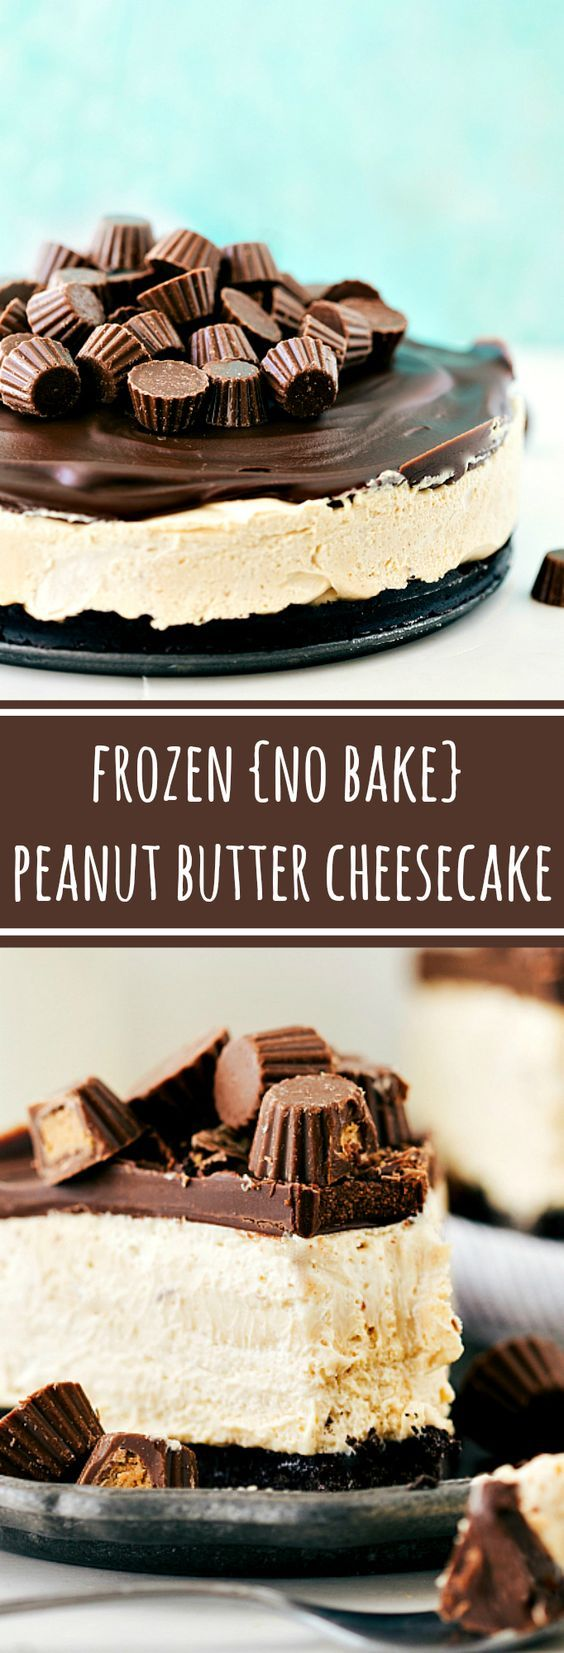 Delicious and EASY Frozen Peanut Butter Cup Cheesecake -- only 15 minutes prep!: